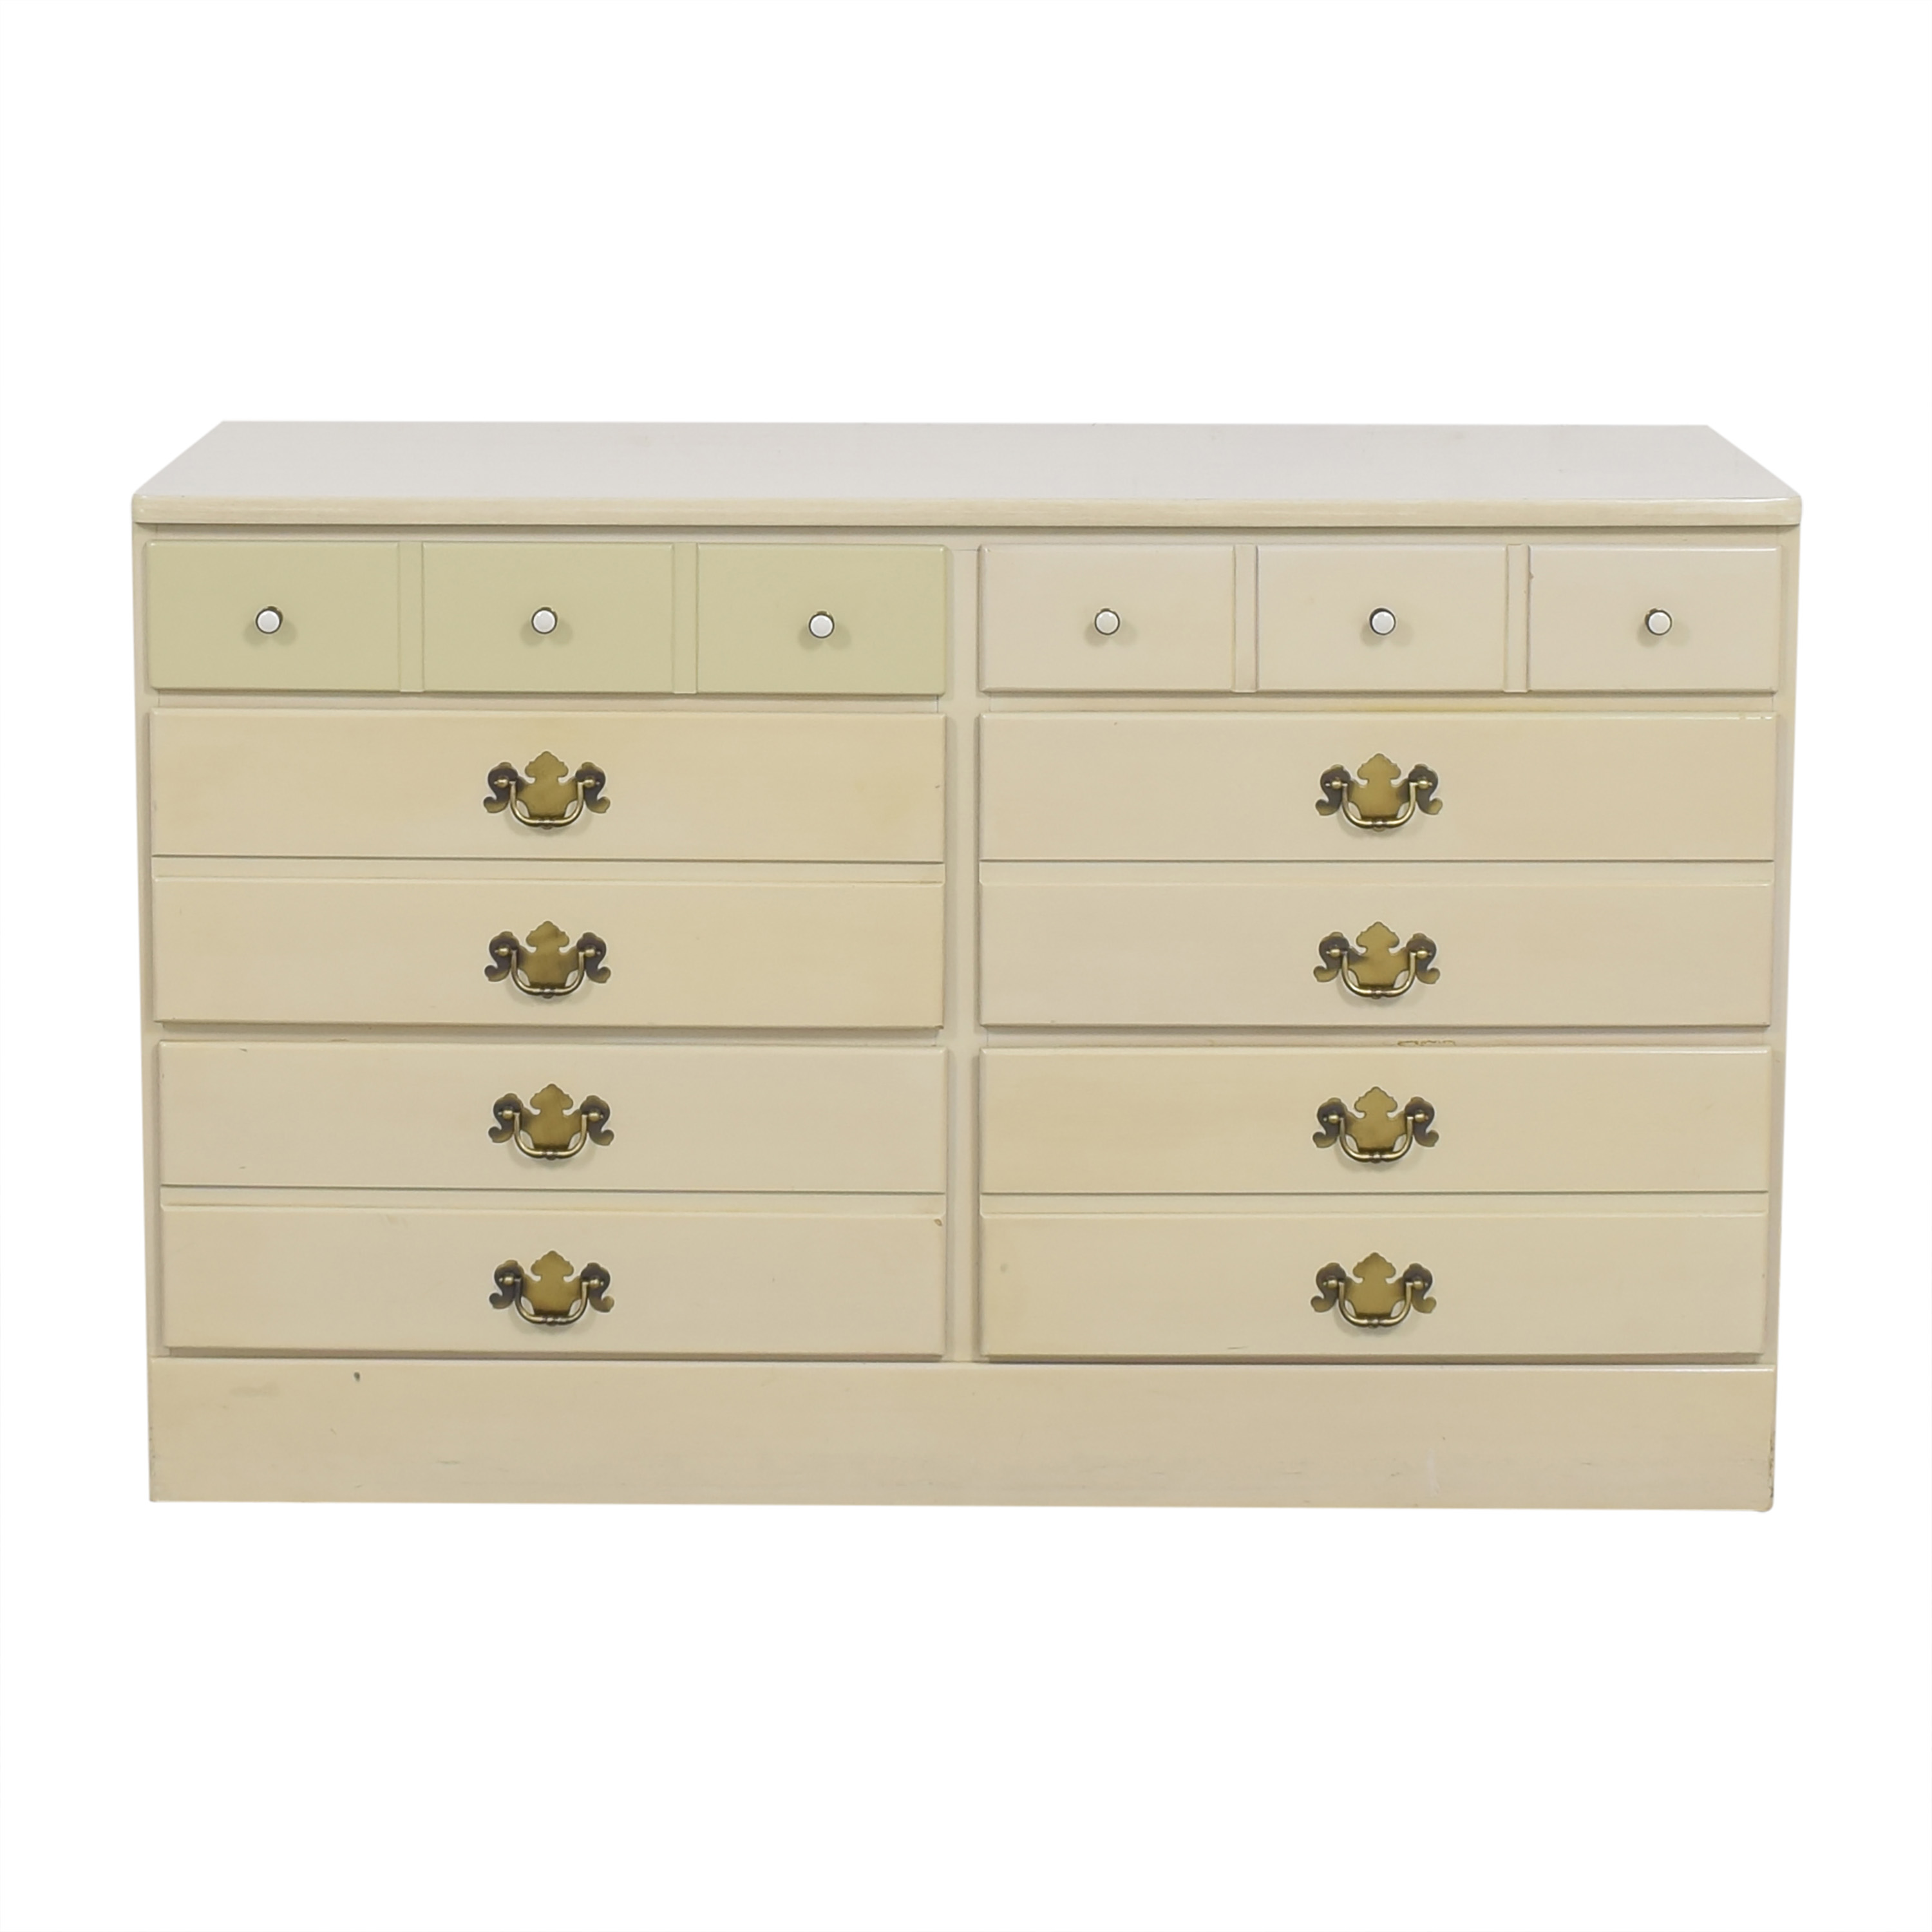 Ethan Allen Ethan Allen Six Drawer Dresser price